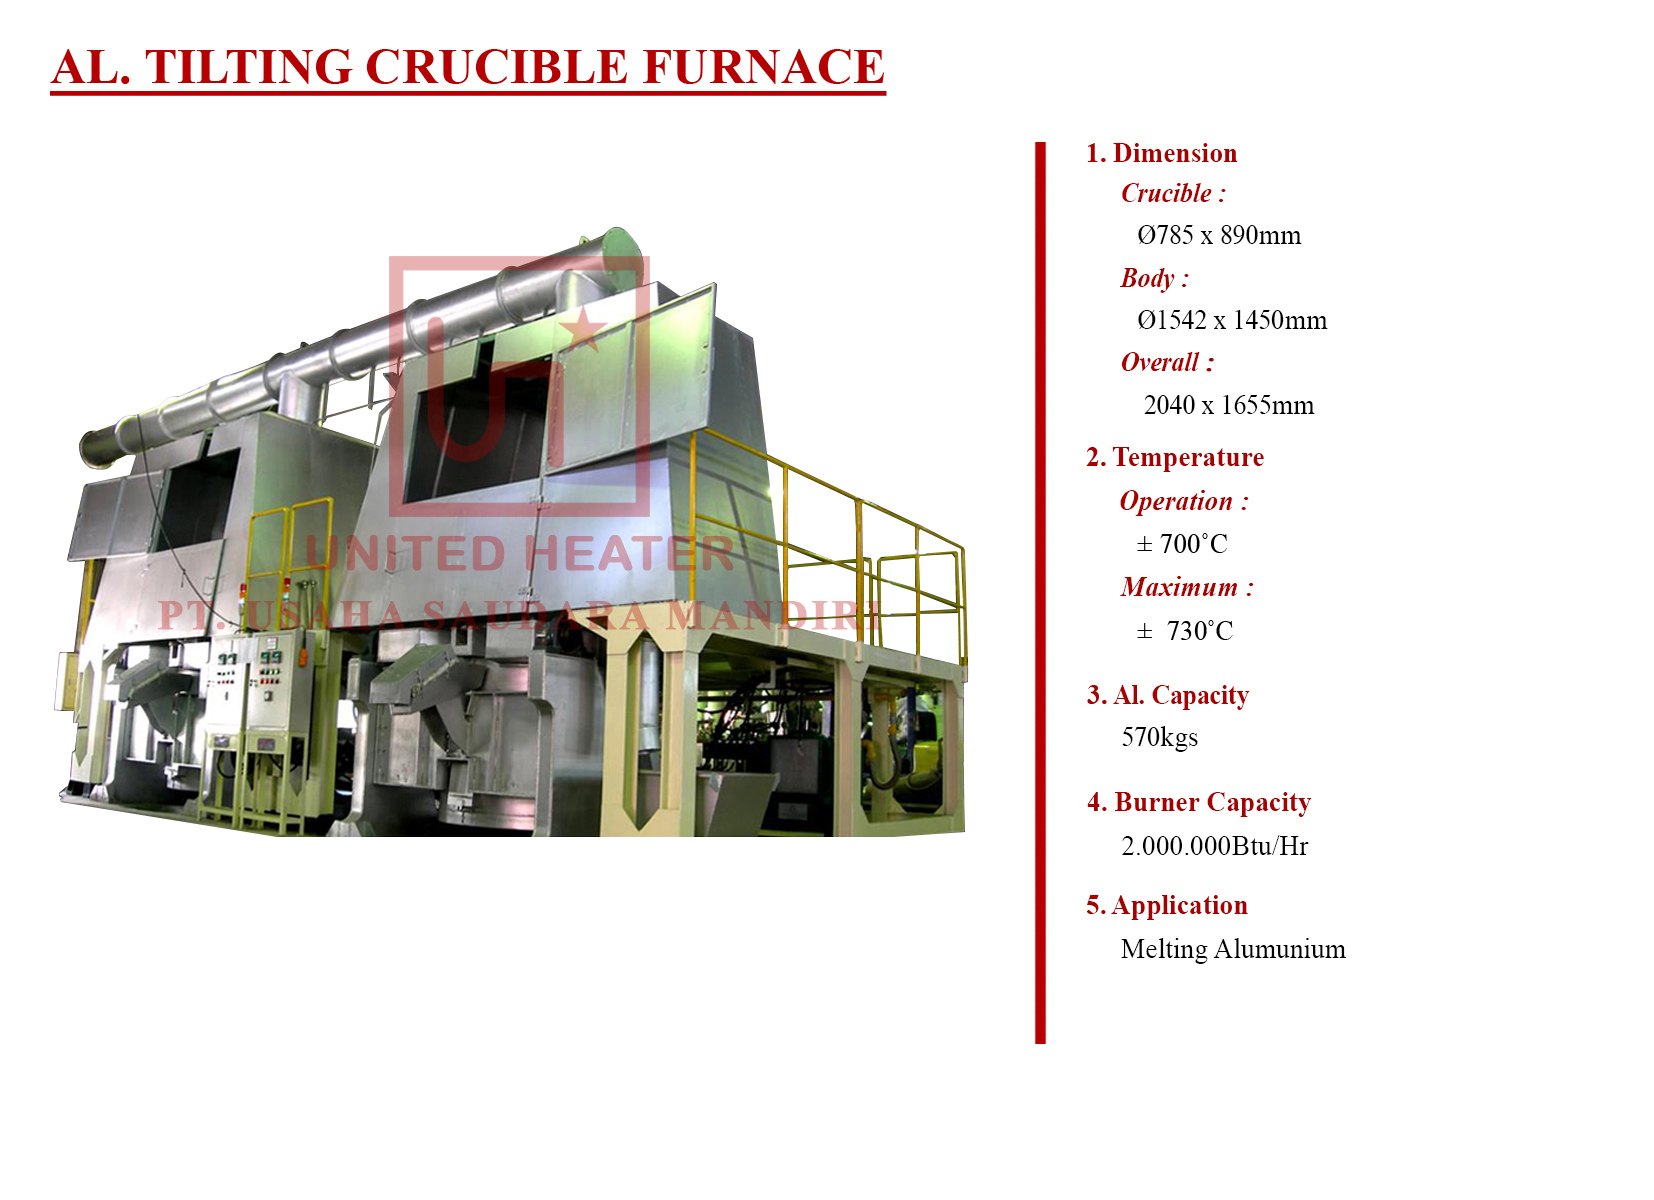 AL TILTING CRUCIBLE FURNACE